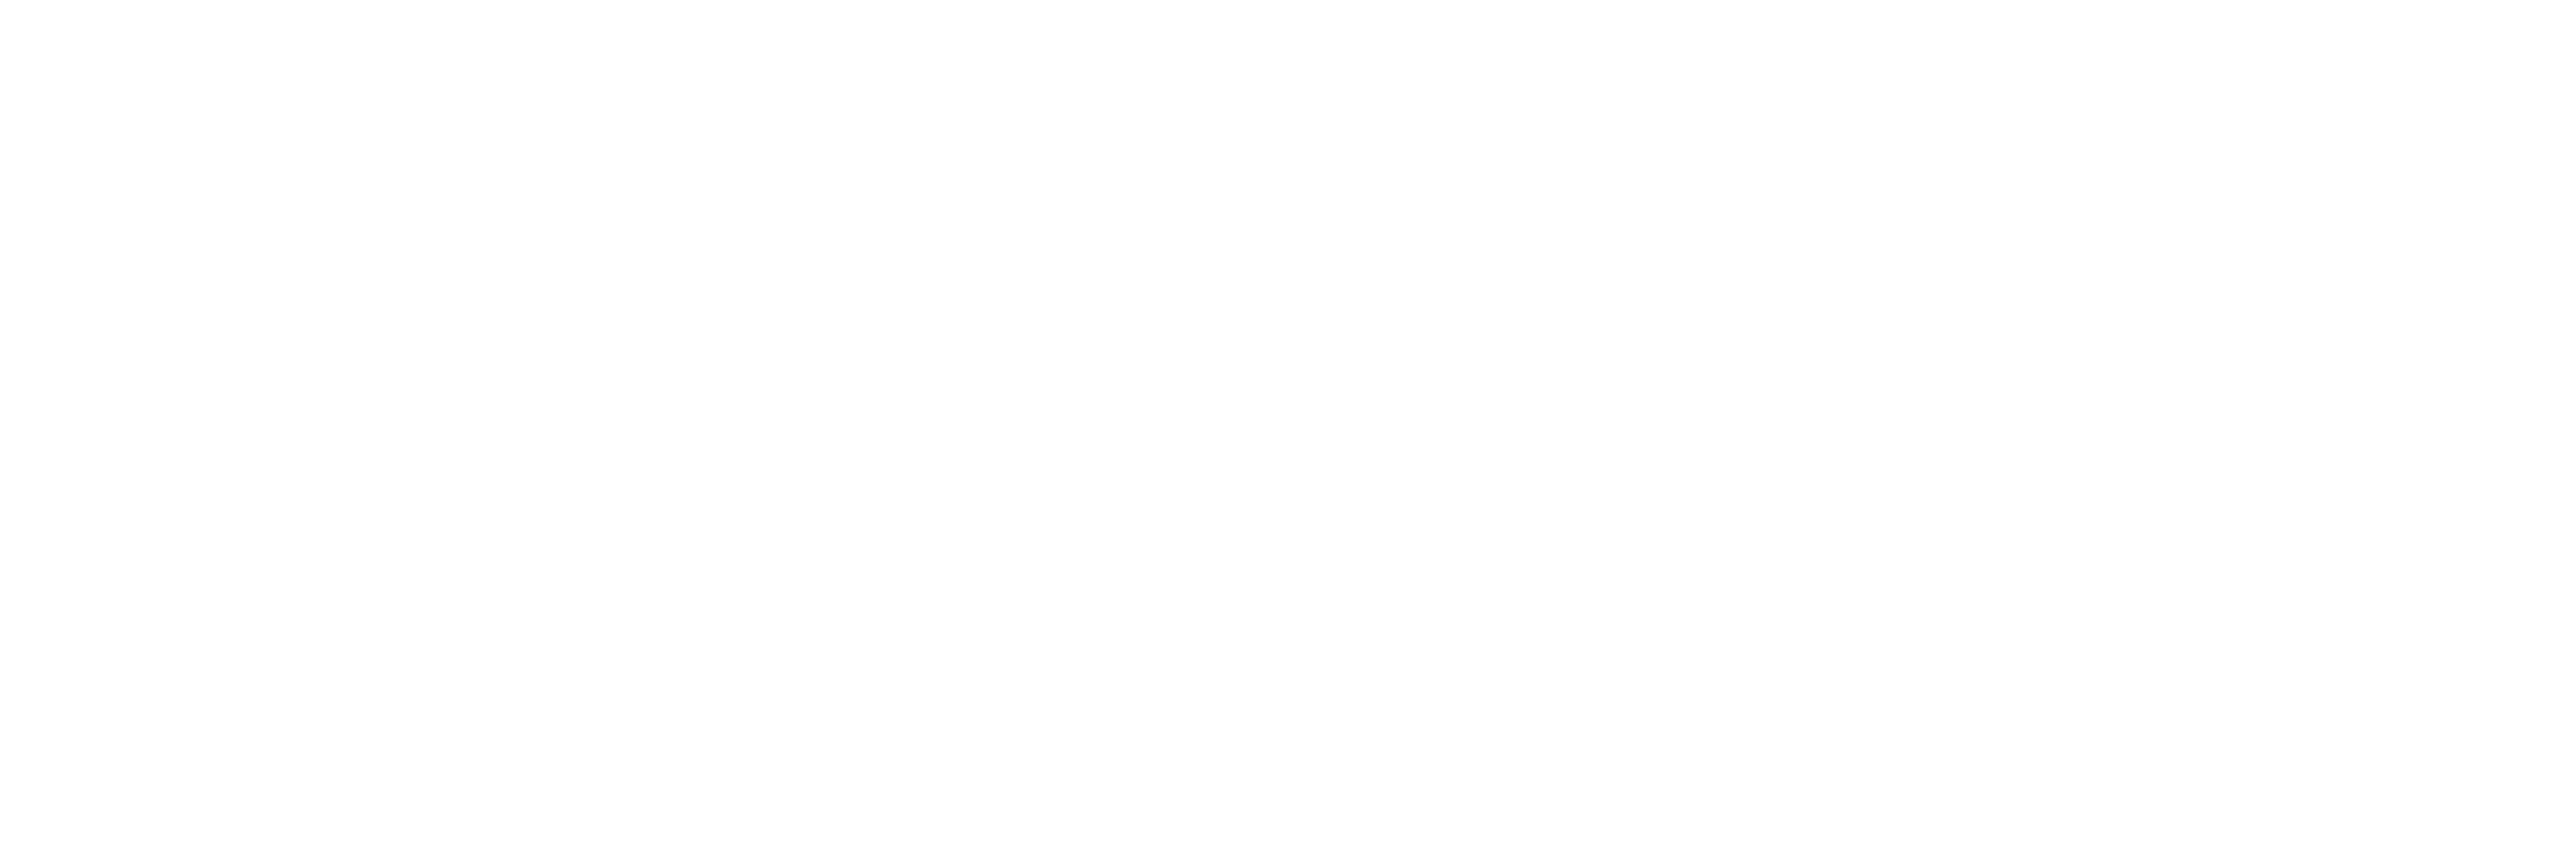 Marilyn Garrison Photography